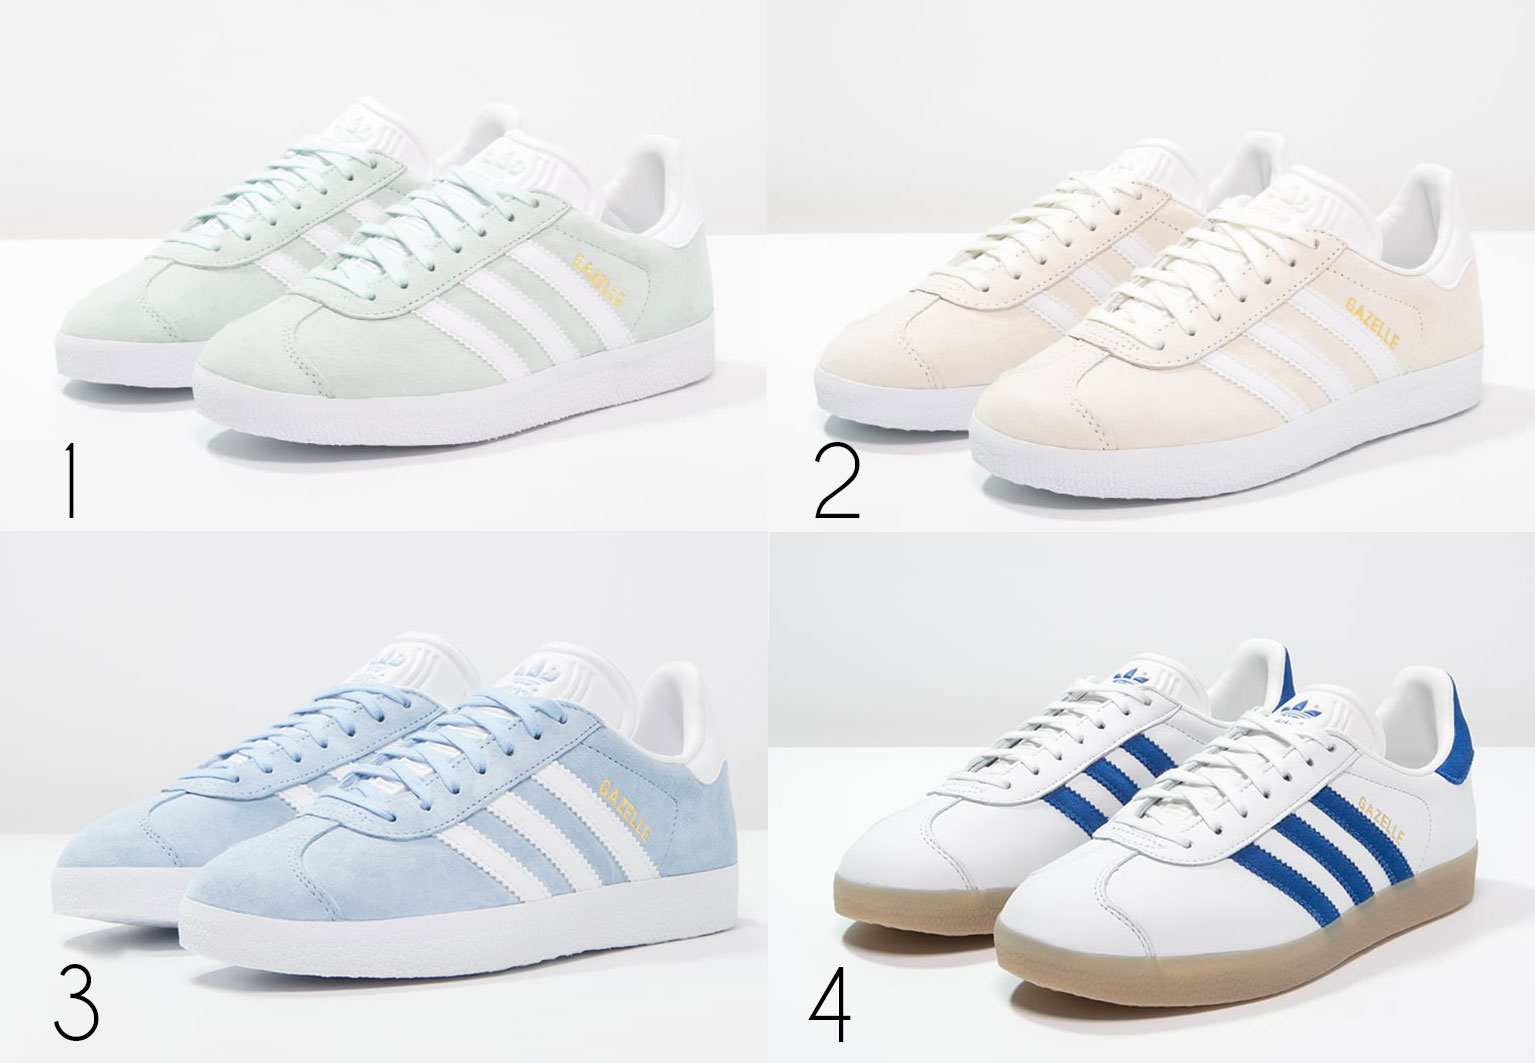 soldes-promotion-gazelle-adidas-shopping-selection-blog-mode